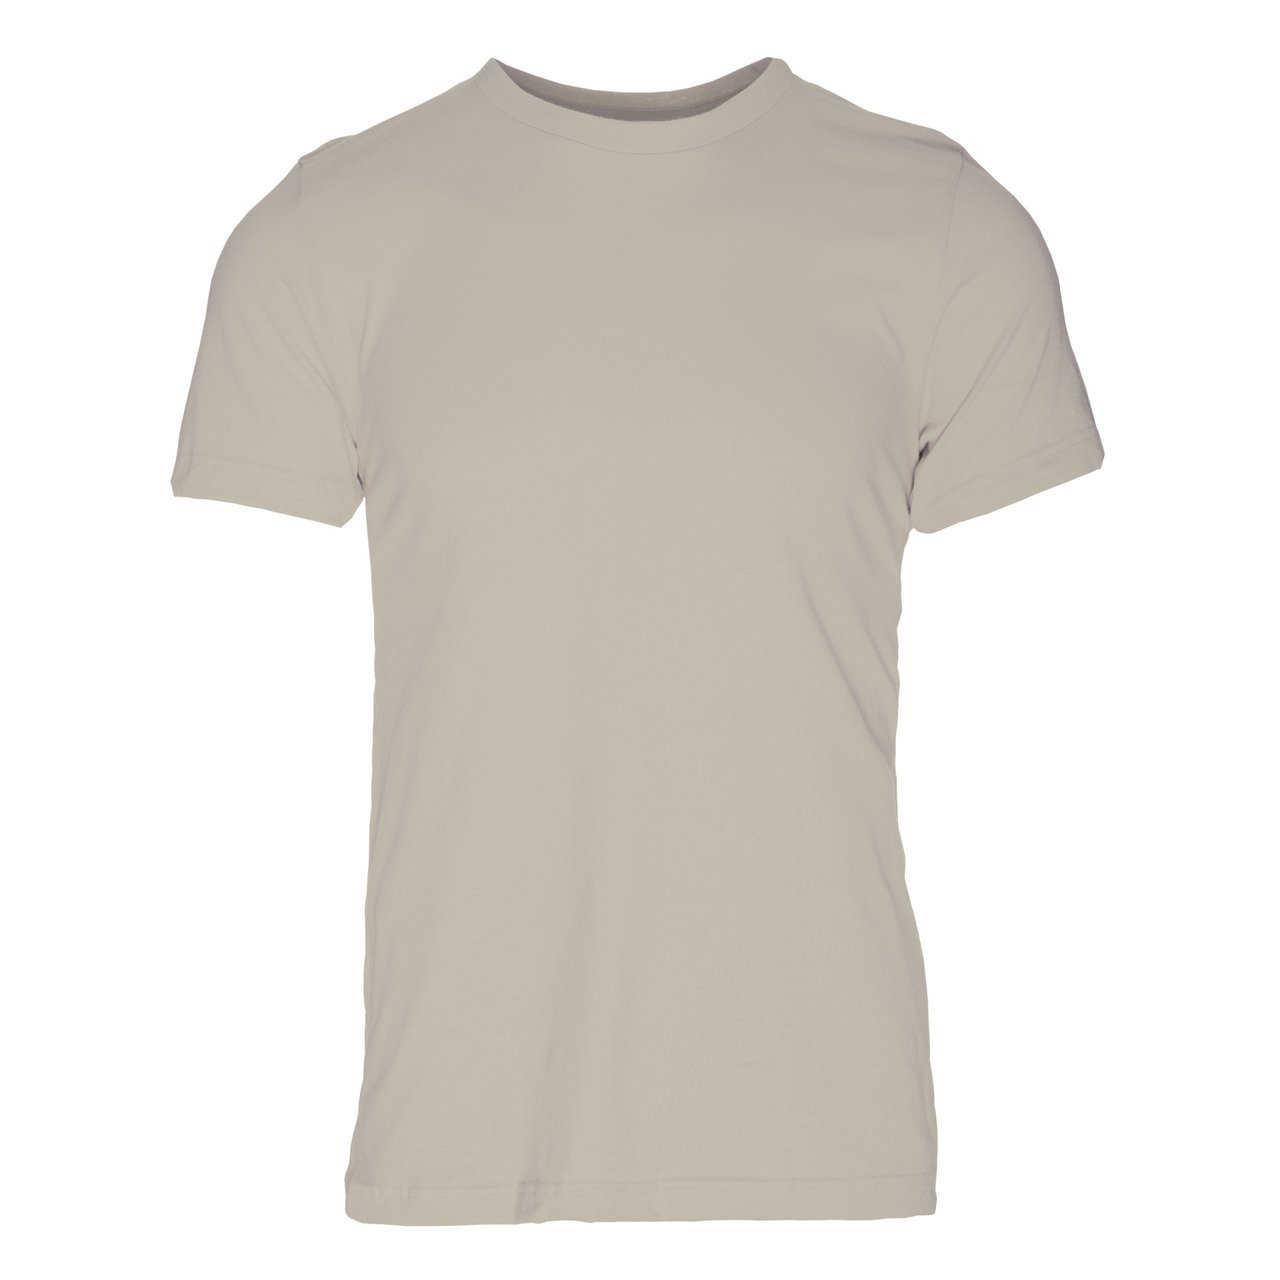 PC100SR Eco REPREVE® Recycled Polyester/Cotton Crew T-Shirt - Silver